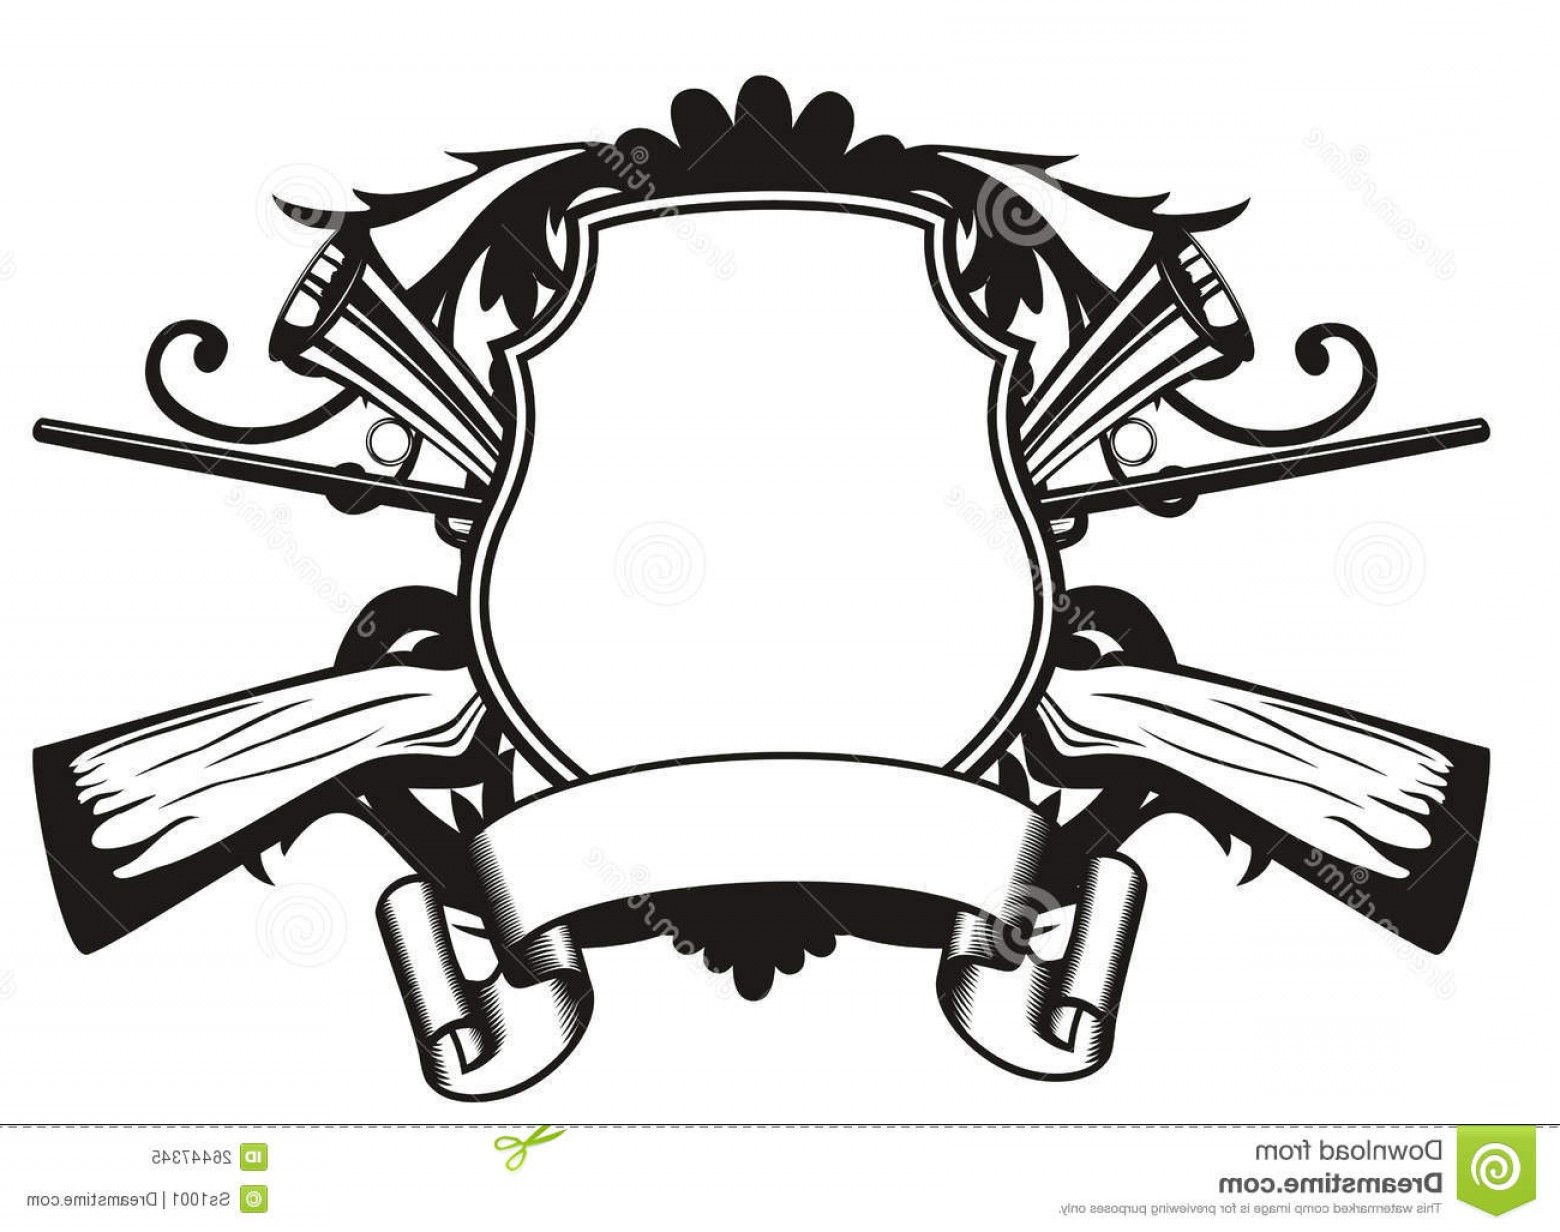 Vector Clip Art Hunting: Royalty Free Stock Photo Frame Hunting Theme Image